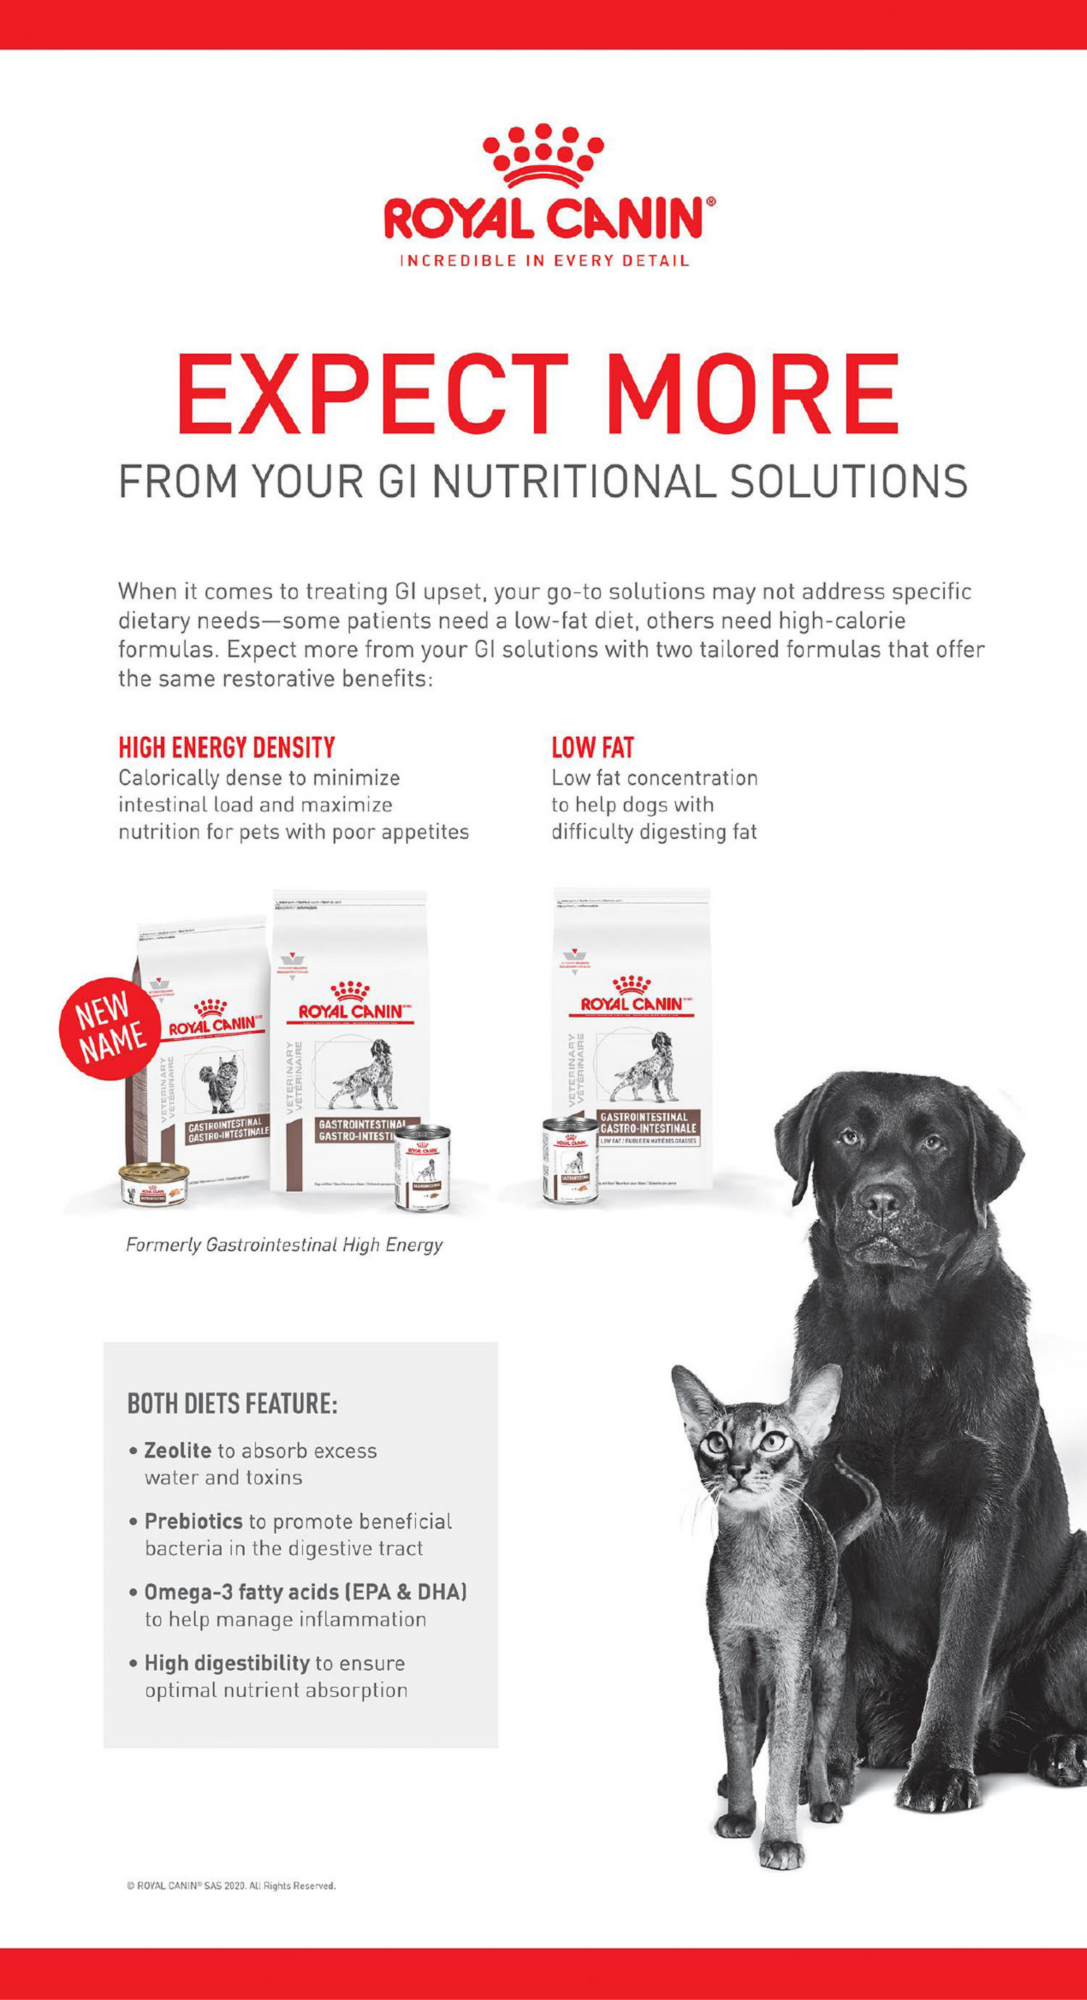 Royal Canin®                          INCREDIBLE IN EVERY DETAIL                         EXPECT MORE                         FROM YOUR GI NUTRITIONAL SOLUTIONS                                                  When it comes to treating GI upset, your go-to solutions may not address specific dietary needs - some patients need a low-fat diet, others need high-calorie formulas. Expect more from your GI solutions with two tailored formulas that offer the same restorative benefits:                                                  HIGH ENERGY DENSITY                         Calorically dense to minimize intensinal load and maximize nutrition for pets with poor appetites                         LOW FAT                         Low fat concentratiion to help dogs with difficulty digesting fat                         BOTH DIETS FEATURE:                         Zeolite to absorb excess water and toxins                         Prebiotics to promote beneficial bacteria in the digestive tract                         Omega-3 fatty acids (EPA & DHA) to help manage inflammation                         High digestibility to ensure optimal nutrient absorption